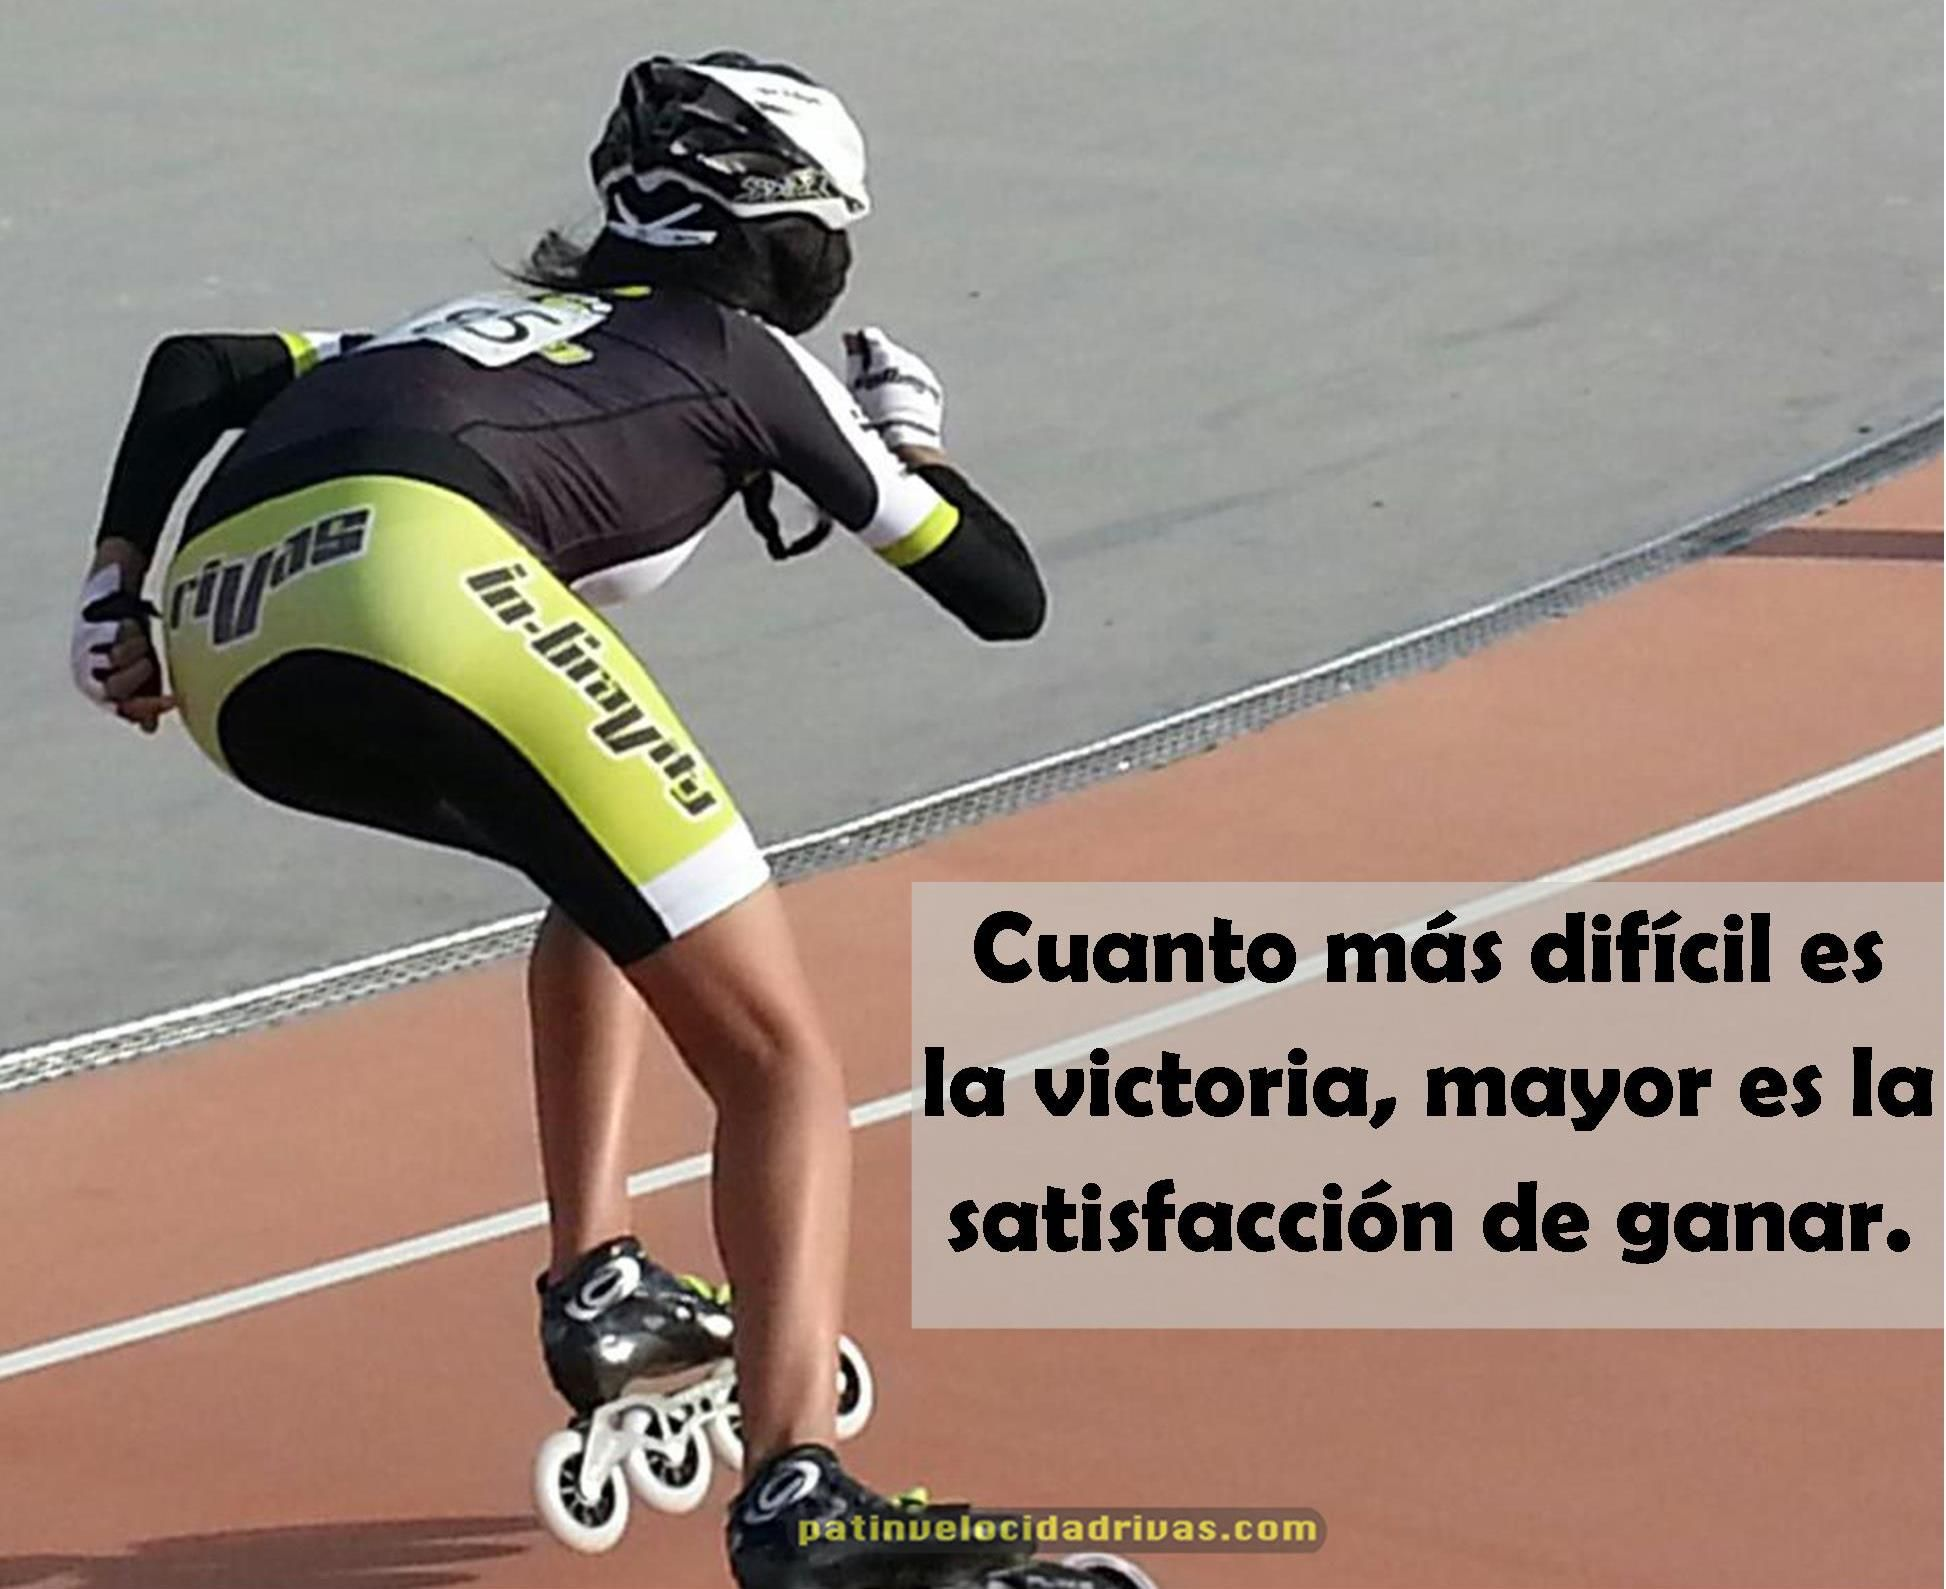 "PatínRivasIn-Gravity on Twitter: ""¡Feliz fin de semana! #motivación #patinaje https://t.co/u6Ckw3QE4f"""